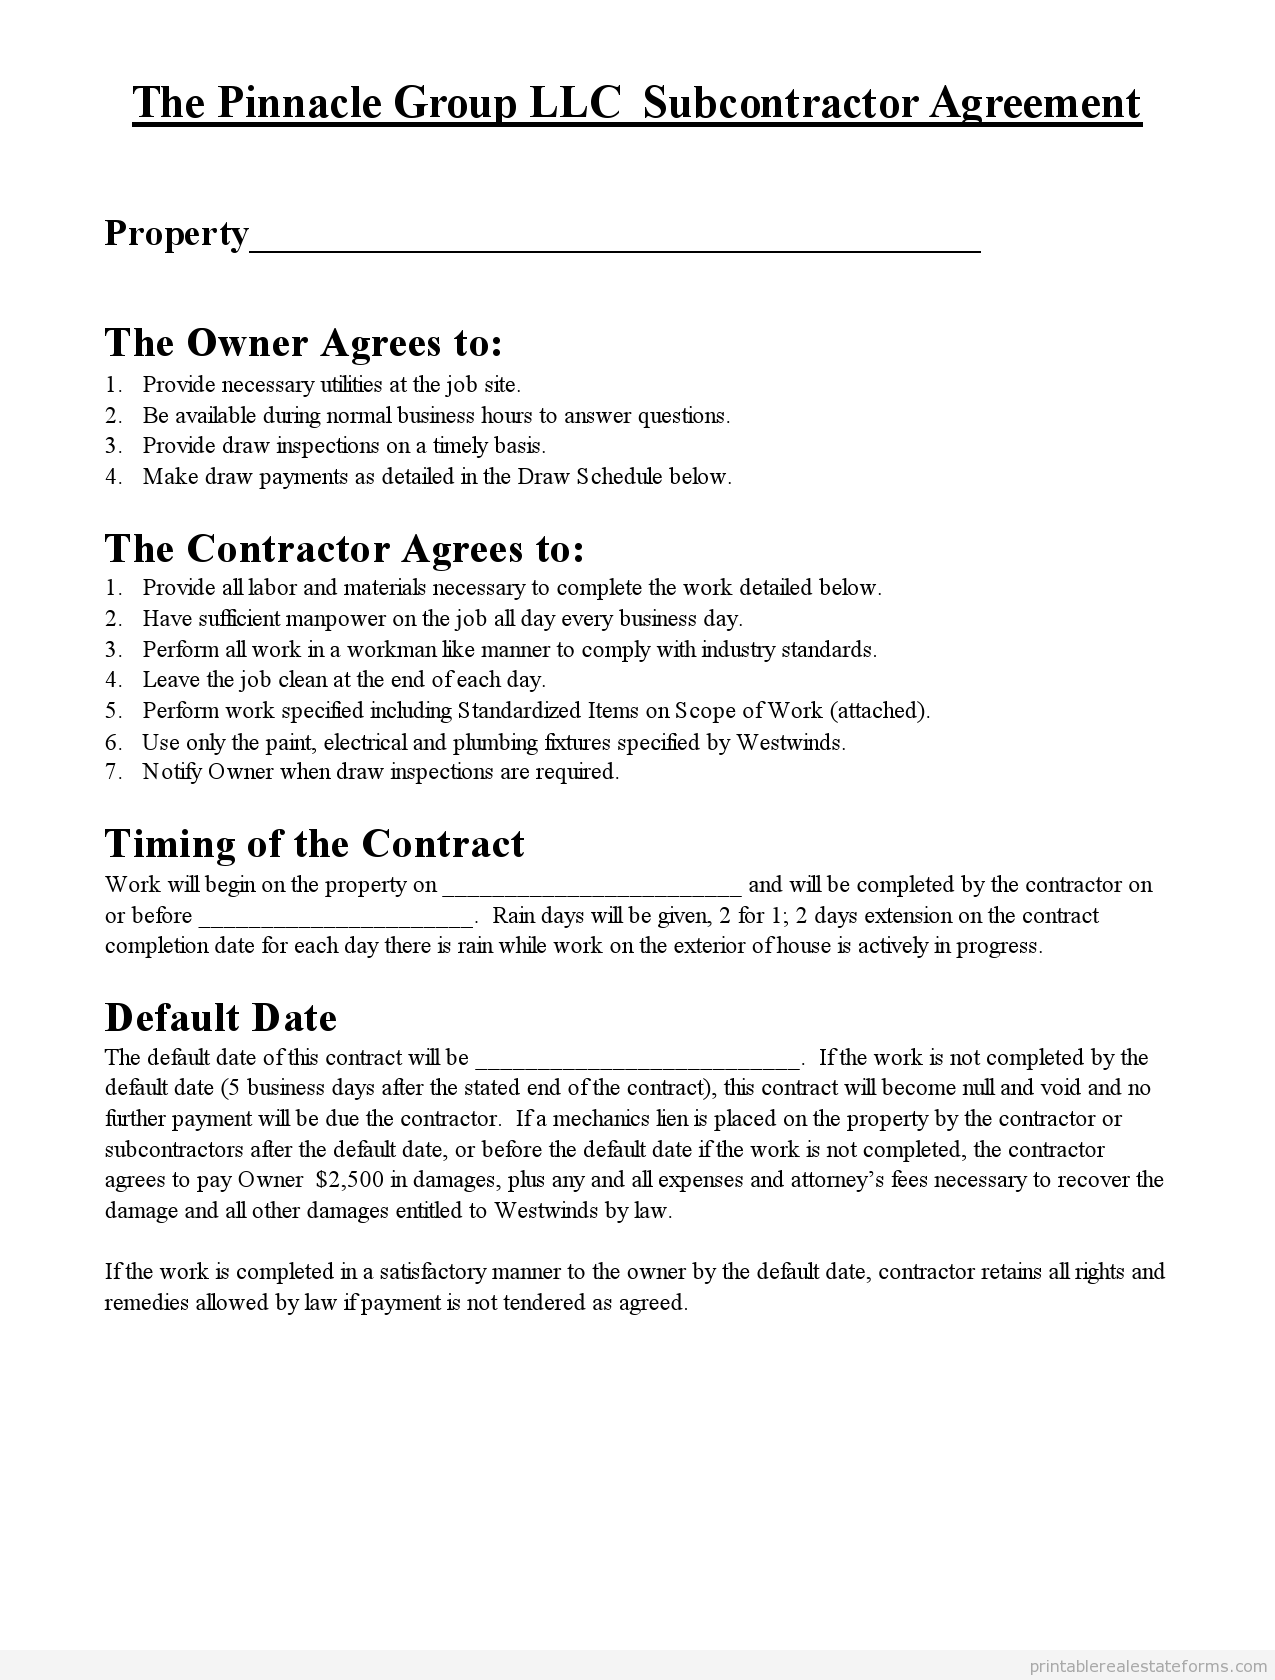 Free Printable Subcontractor Agreement Form  Printable Real